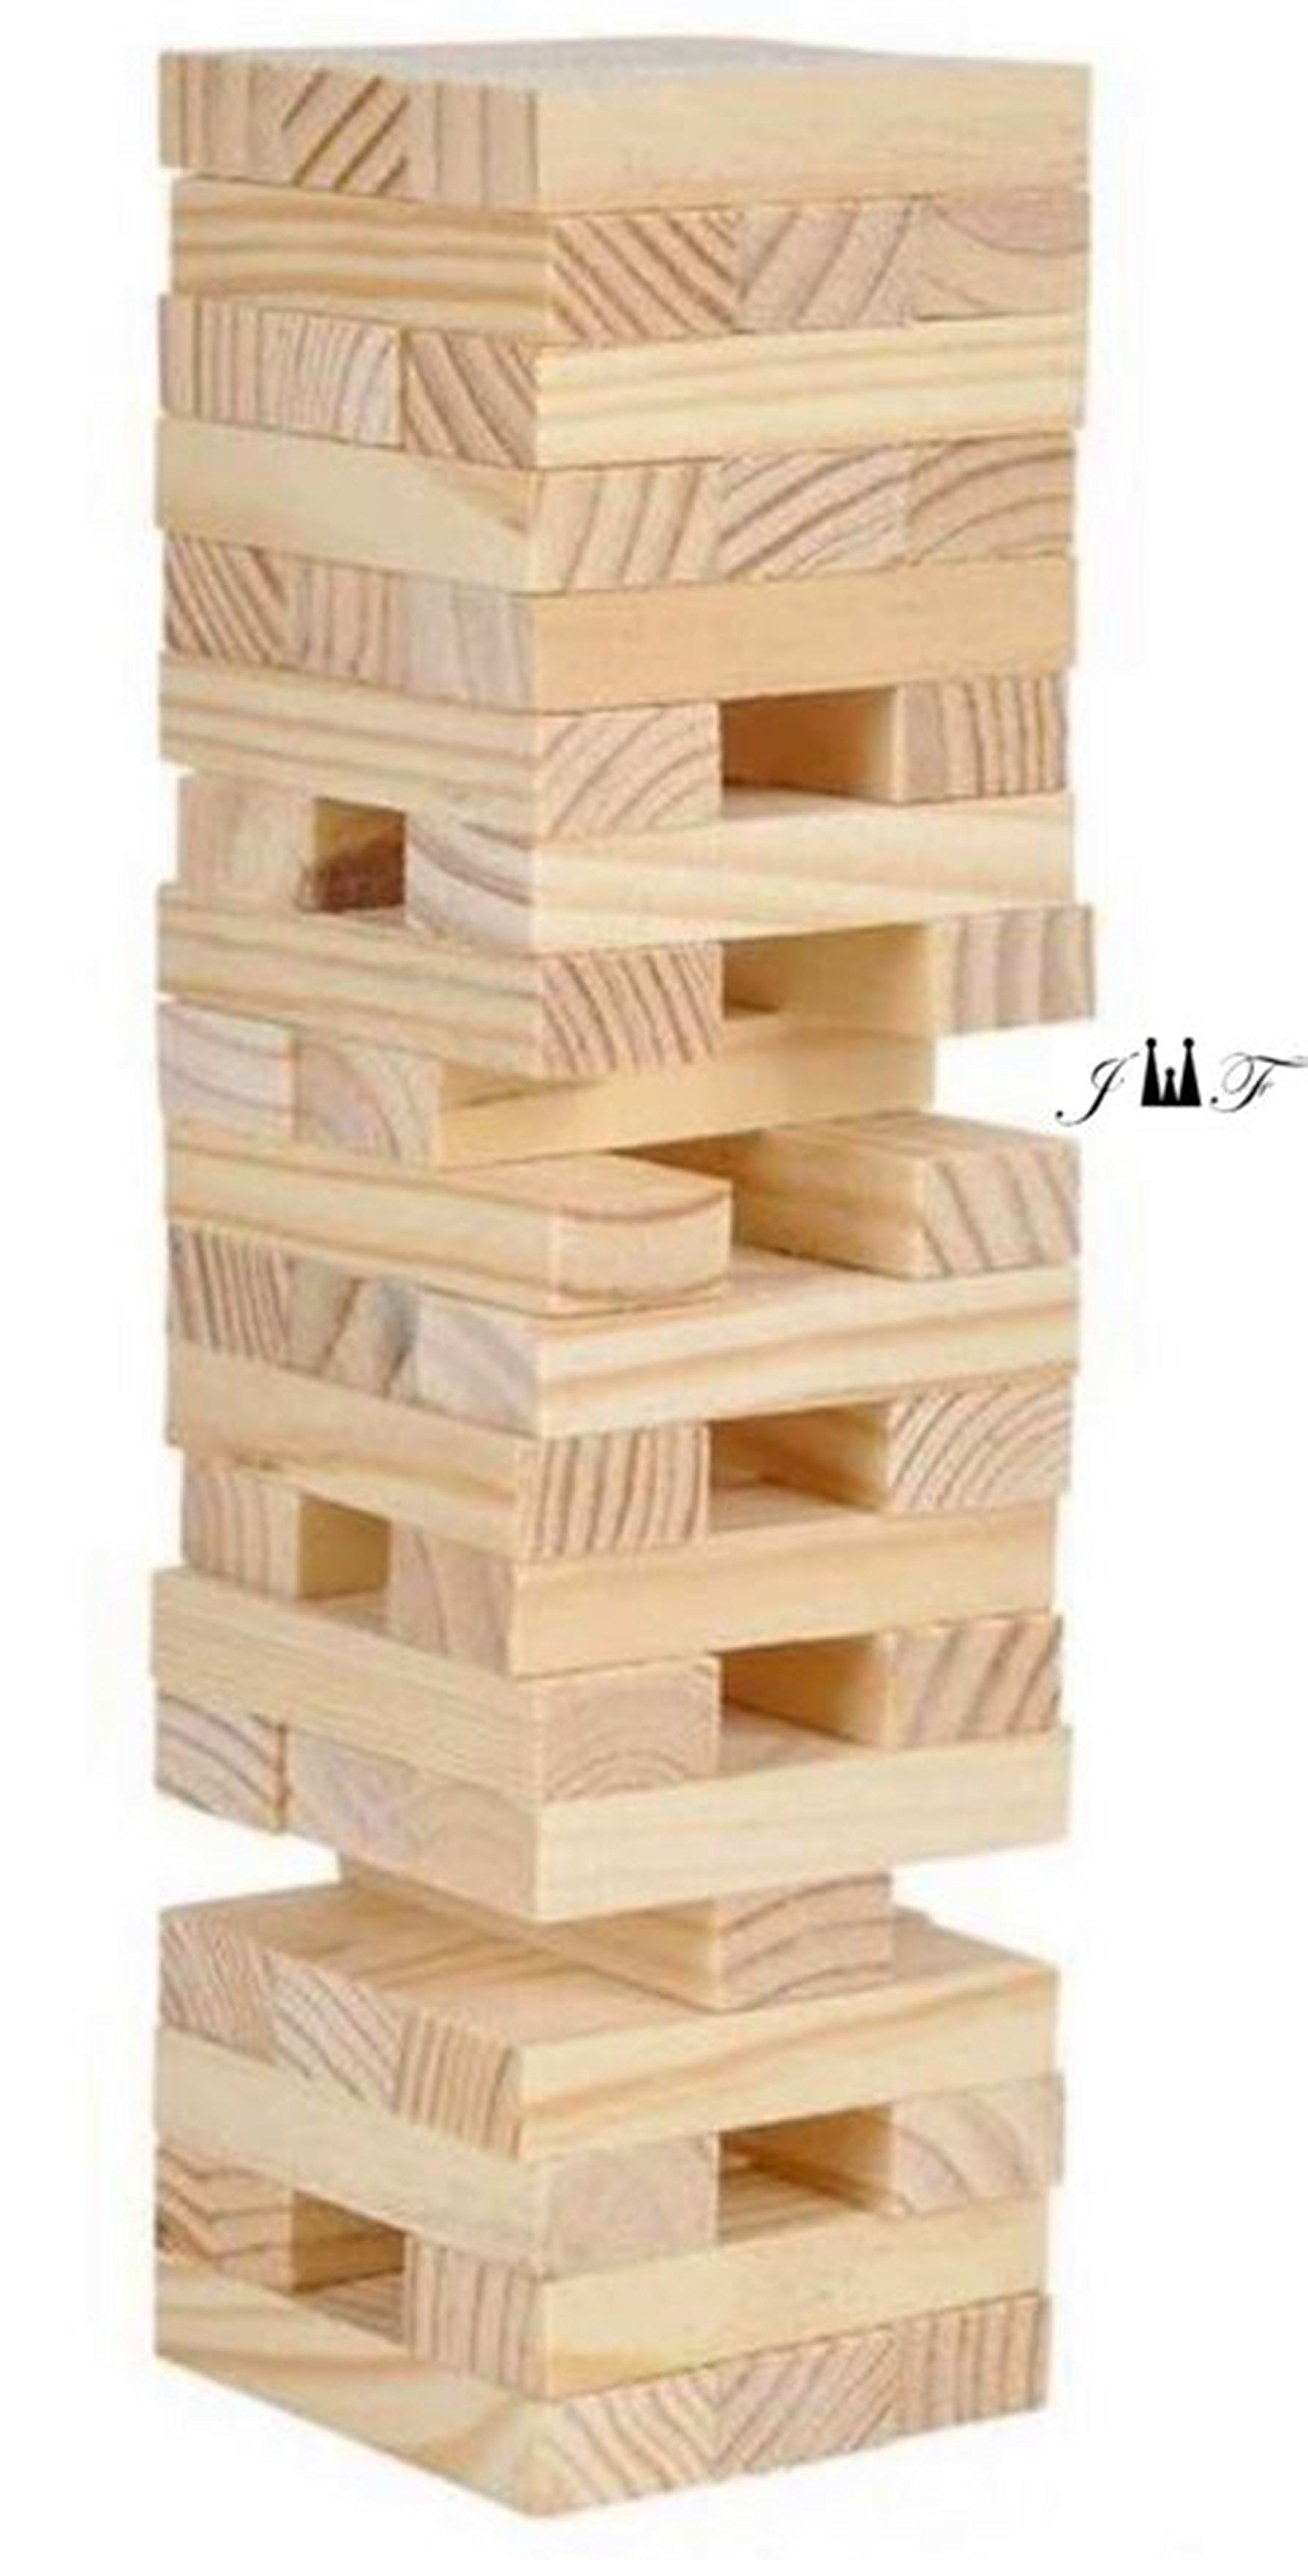 Tower Wood Block Stacking Game PLAY ANY TIME AND ANYWHERE YOU LIKE-48 Stackable Wooden Blocks, Fully Assembled, Durable Natural Wooden Blocks